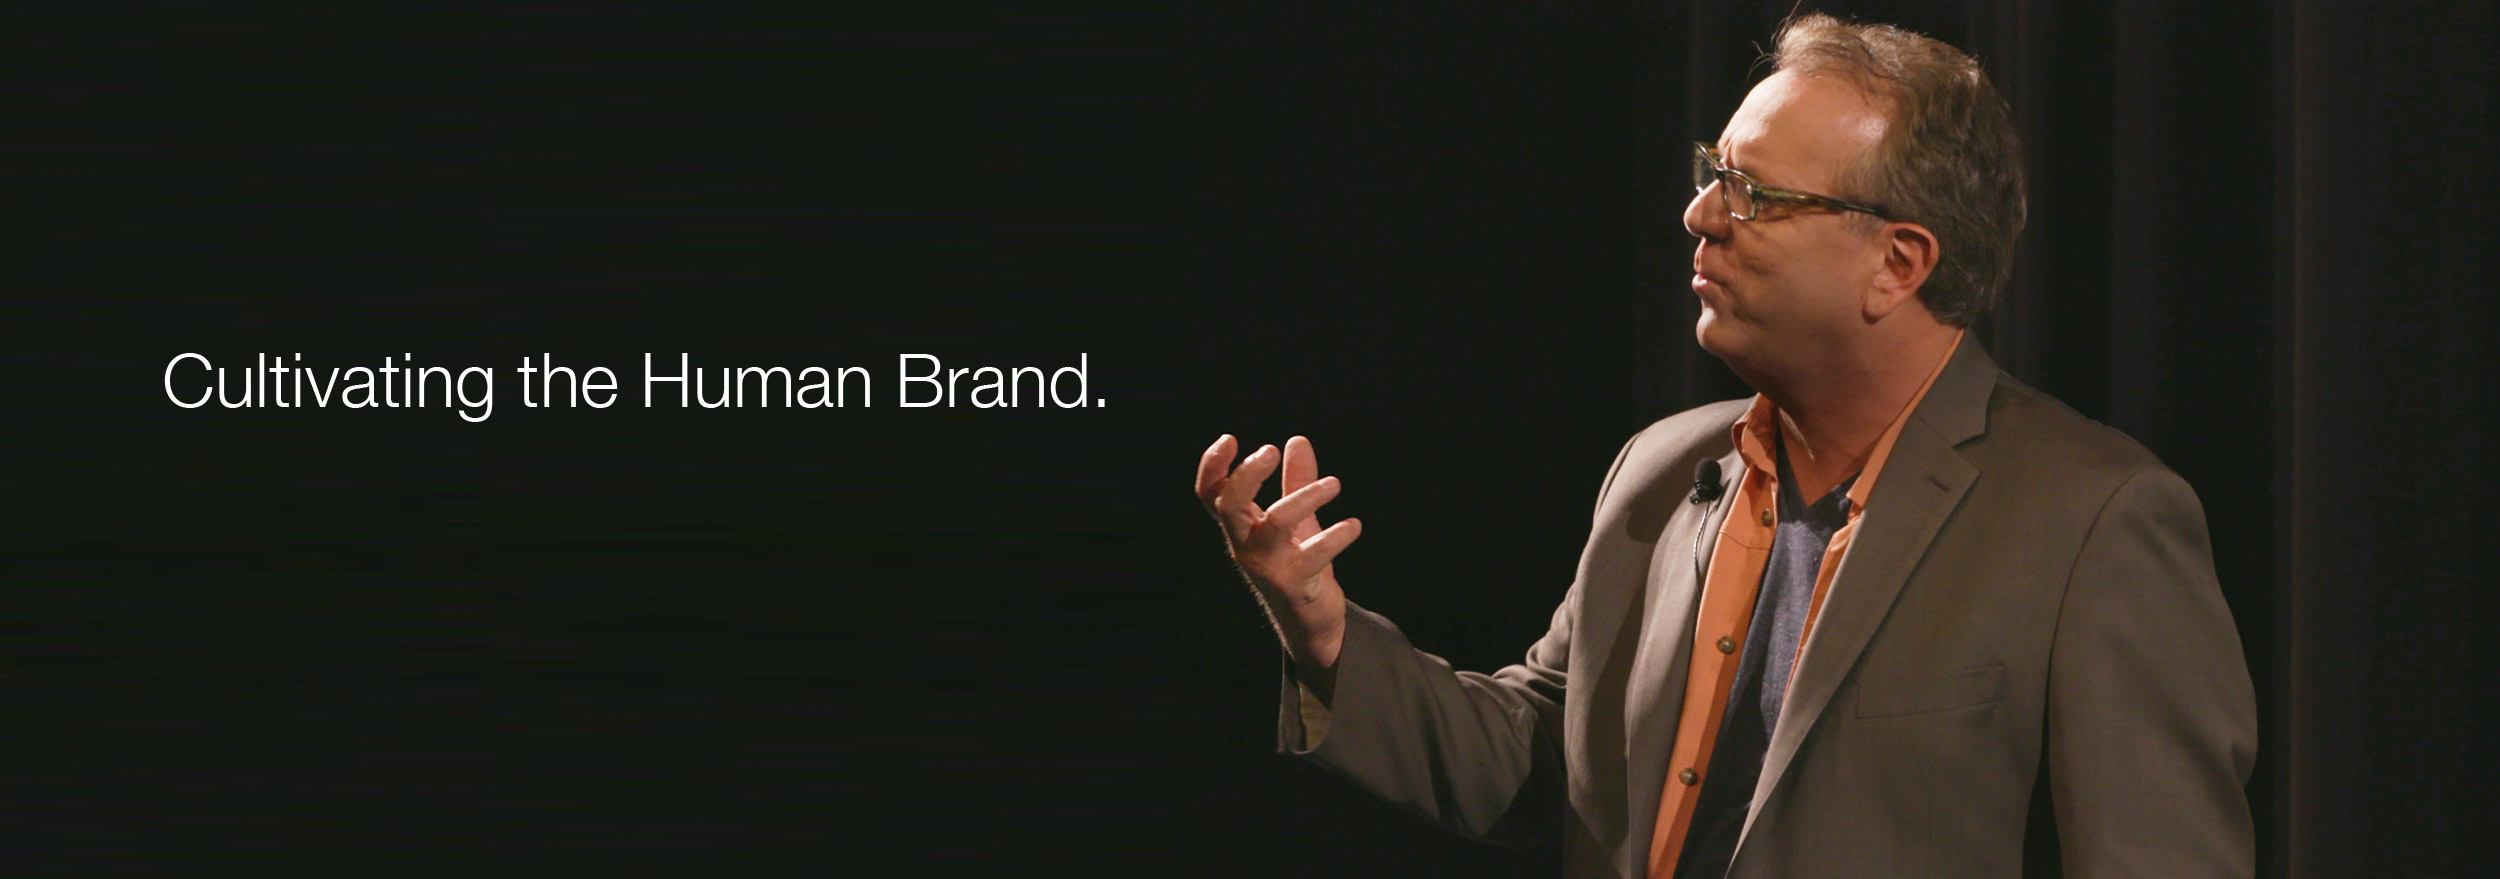 Cultivating the Human Brand.